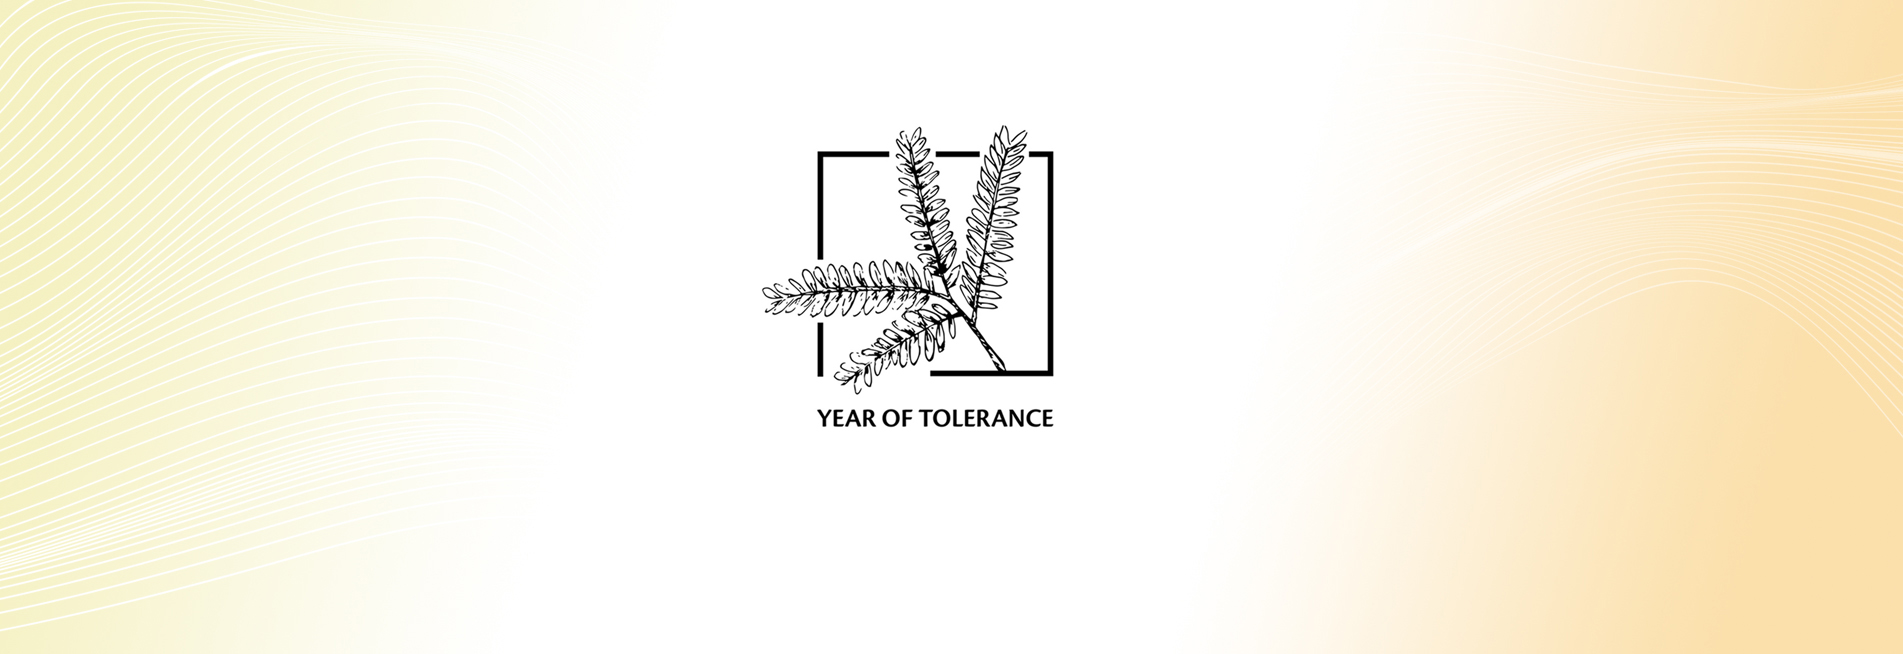 Year of Tolerance 2019